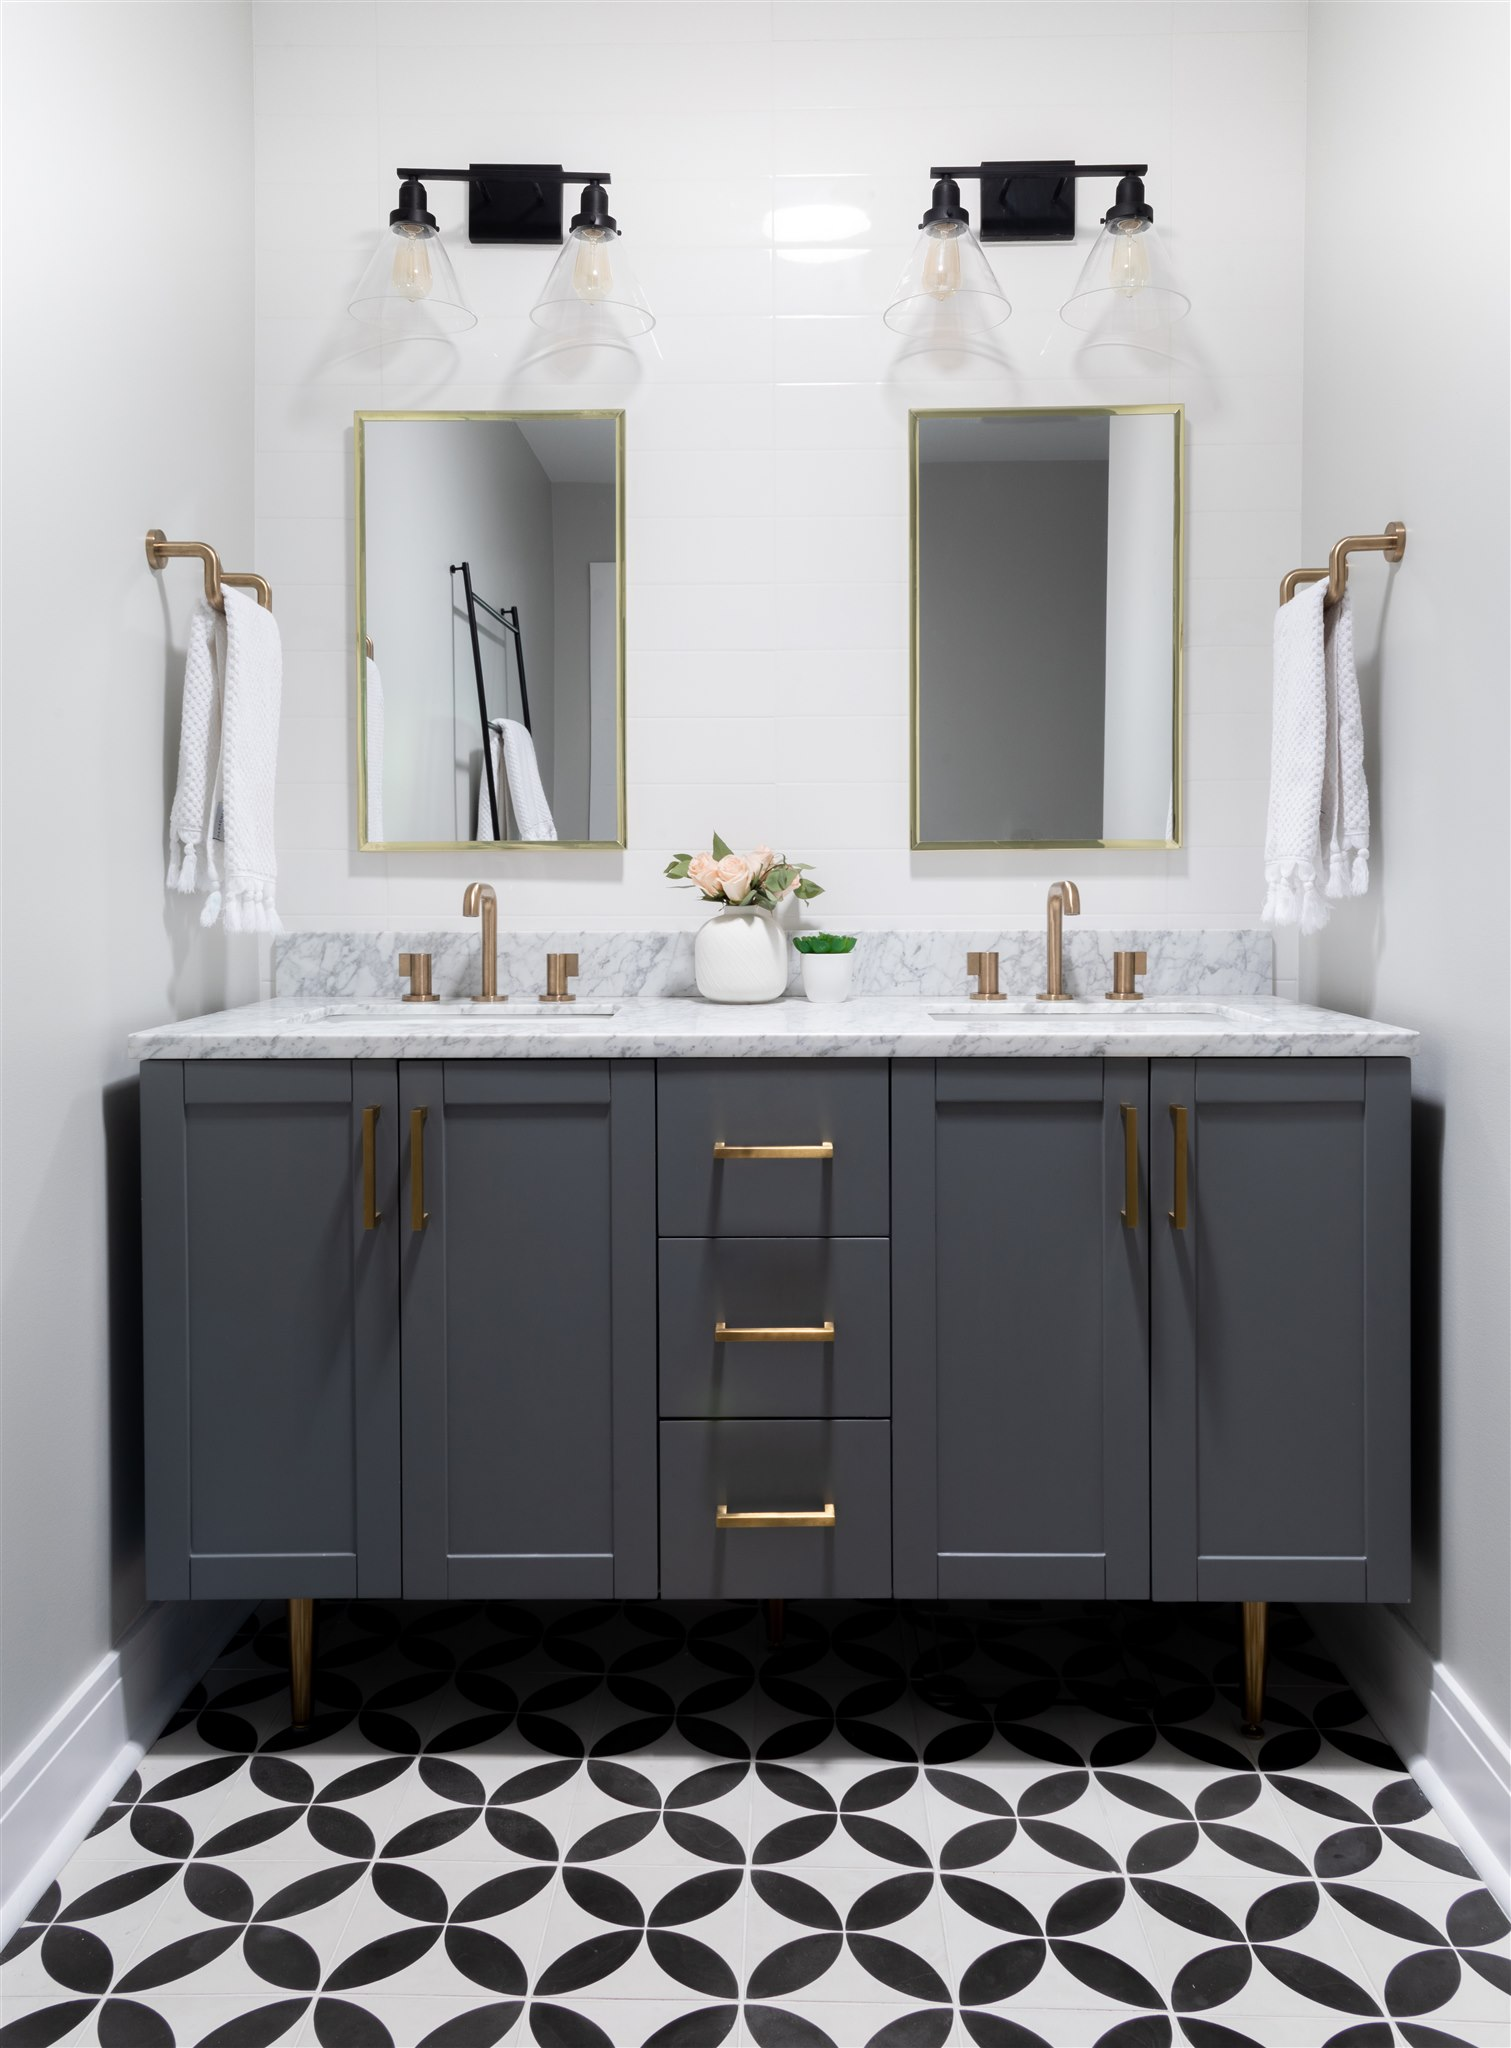 Behind the vanity and in the shower, we installed long subway tiles to give a modern yet familiar feel and add a soft touch to balance out the bold floor tiles.